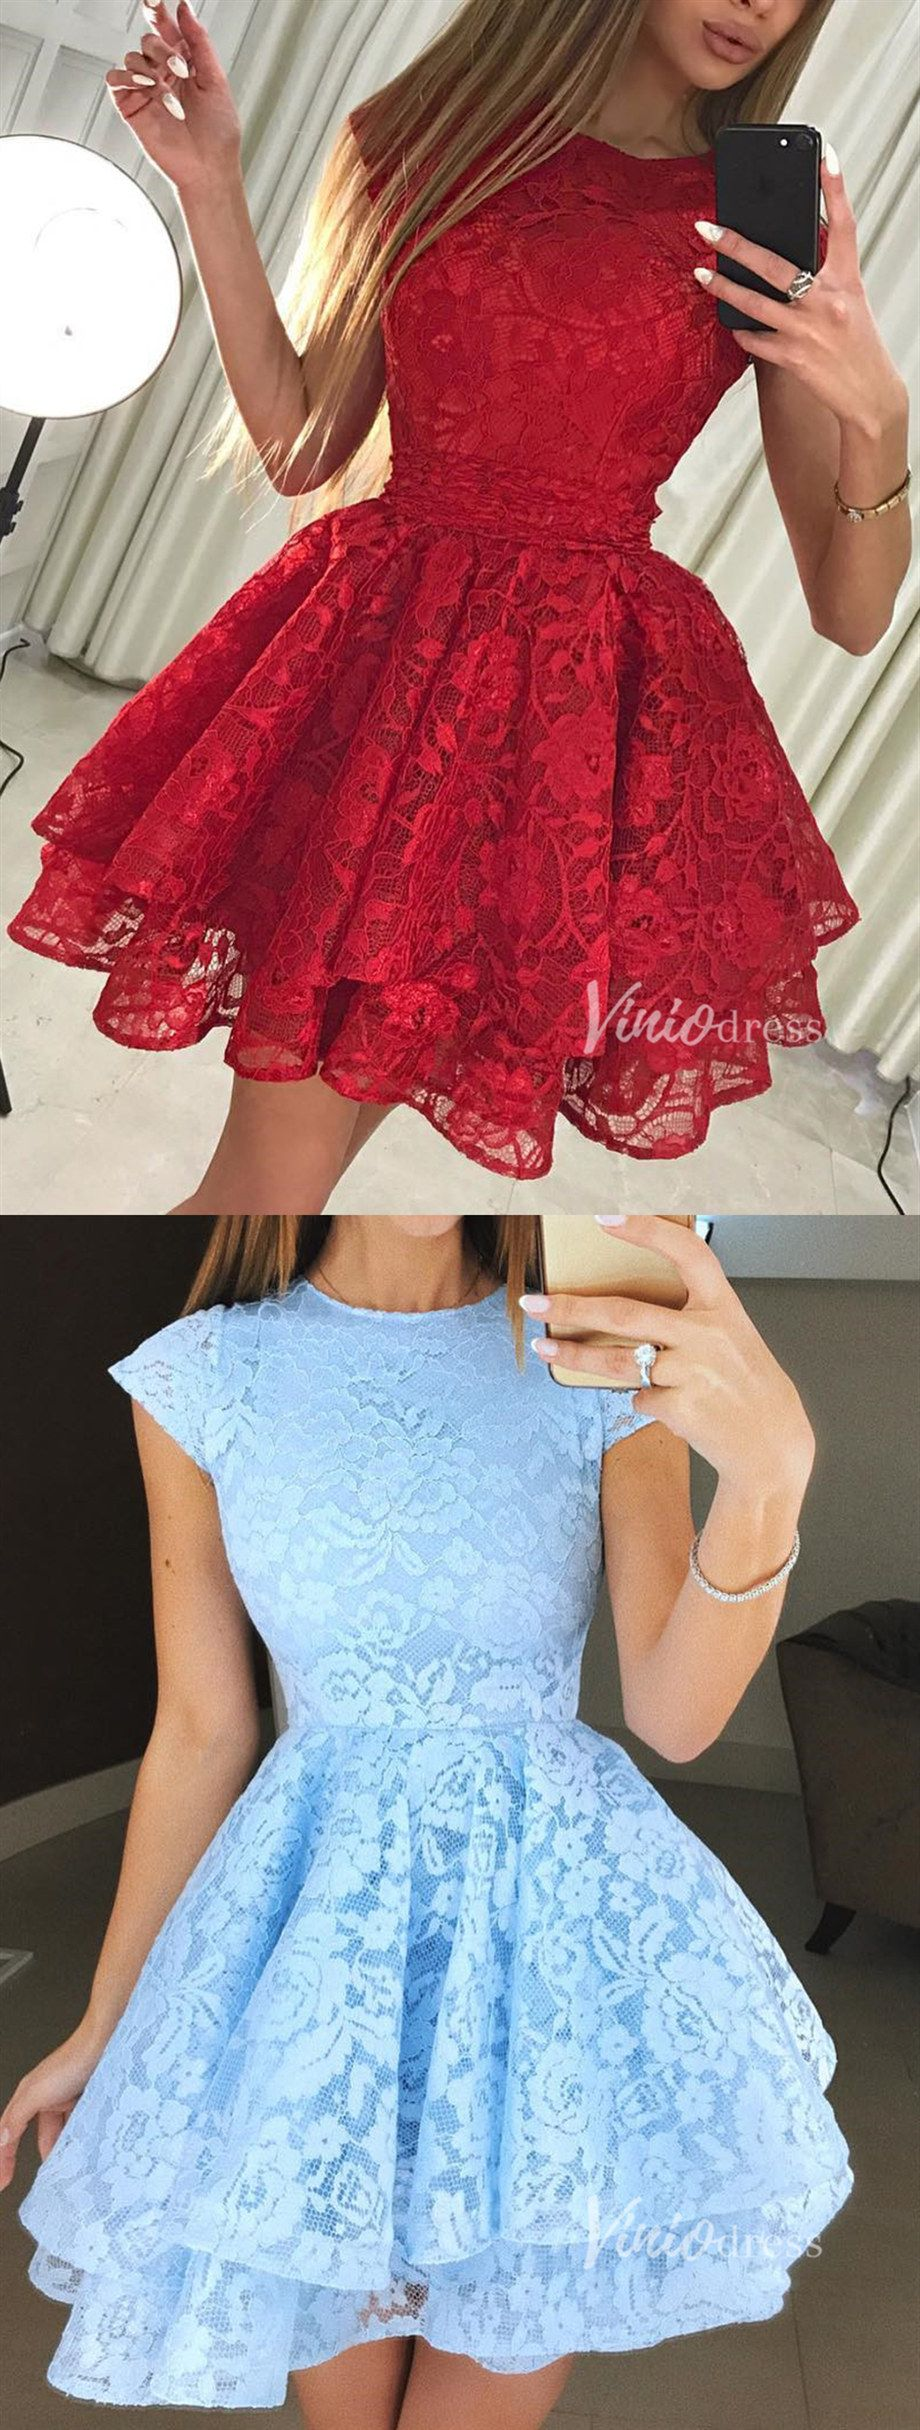 Chic red lace cocktail dress. Sky blue lace homecoming dresses 2019